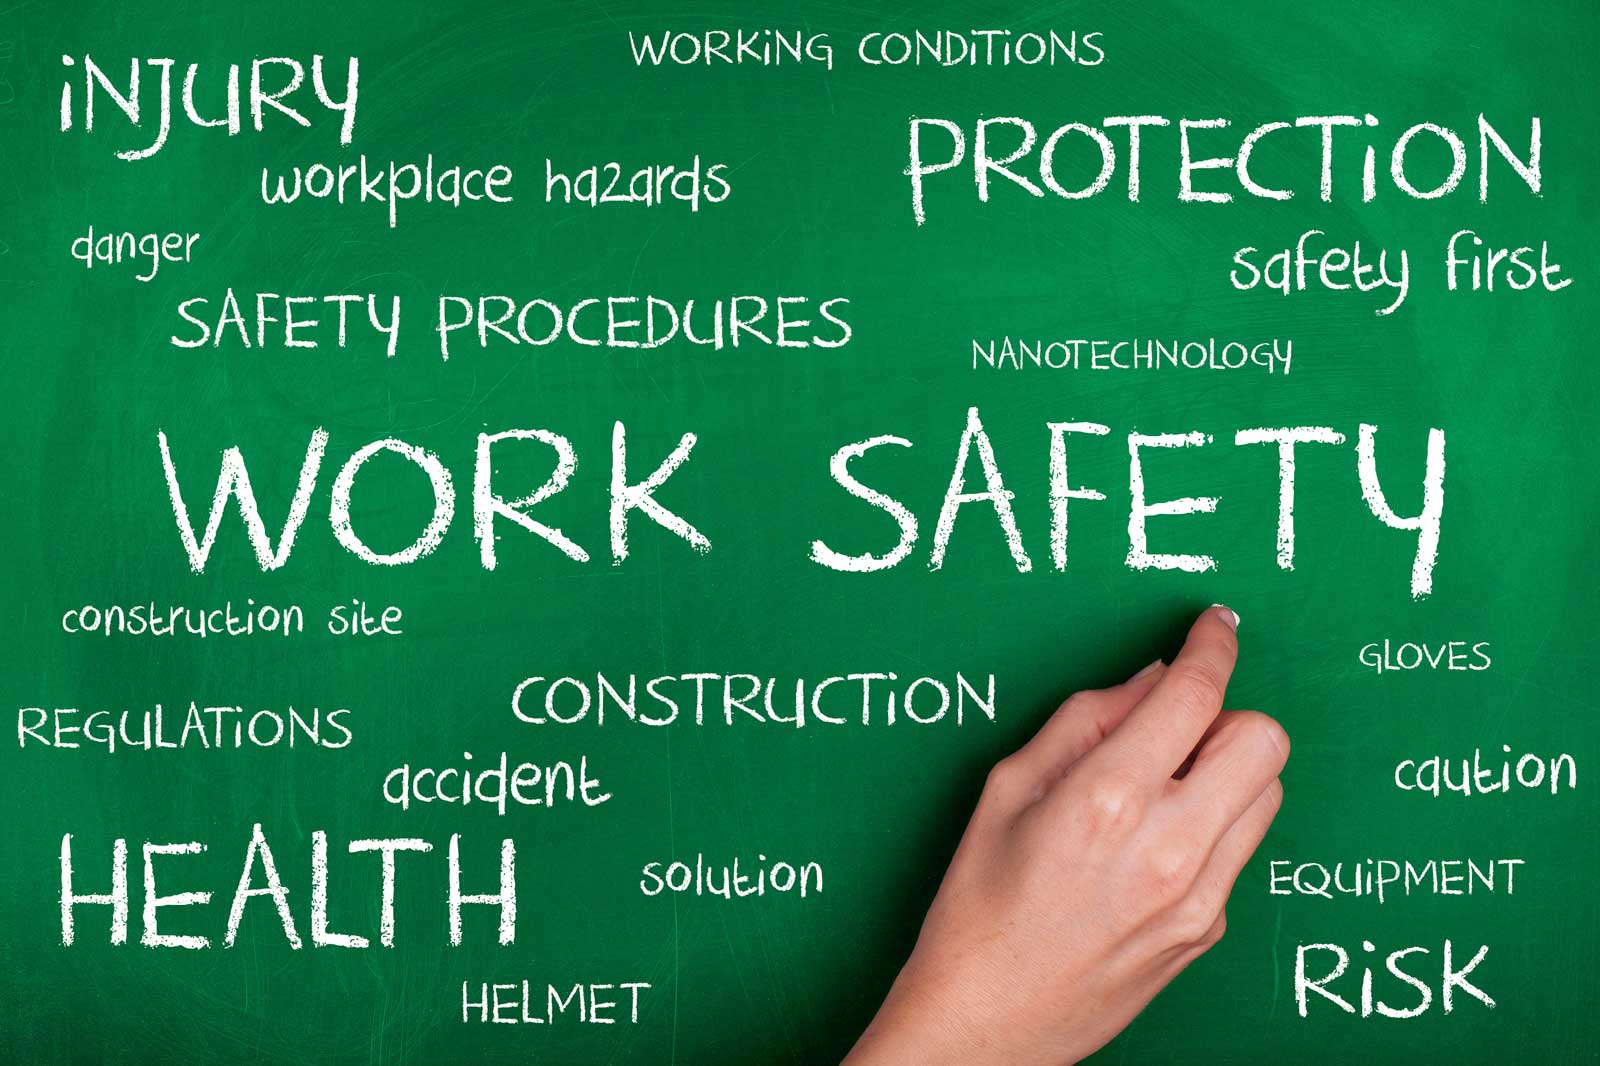 health and safety hazards to workers Under the occupational health and safety act, occupational illness is defined as a condition that results from exposure in a workplace to a physical, chemical or biological agent to the extent that the normal physiological mechanisms are affected and the health of the worker is impaired.